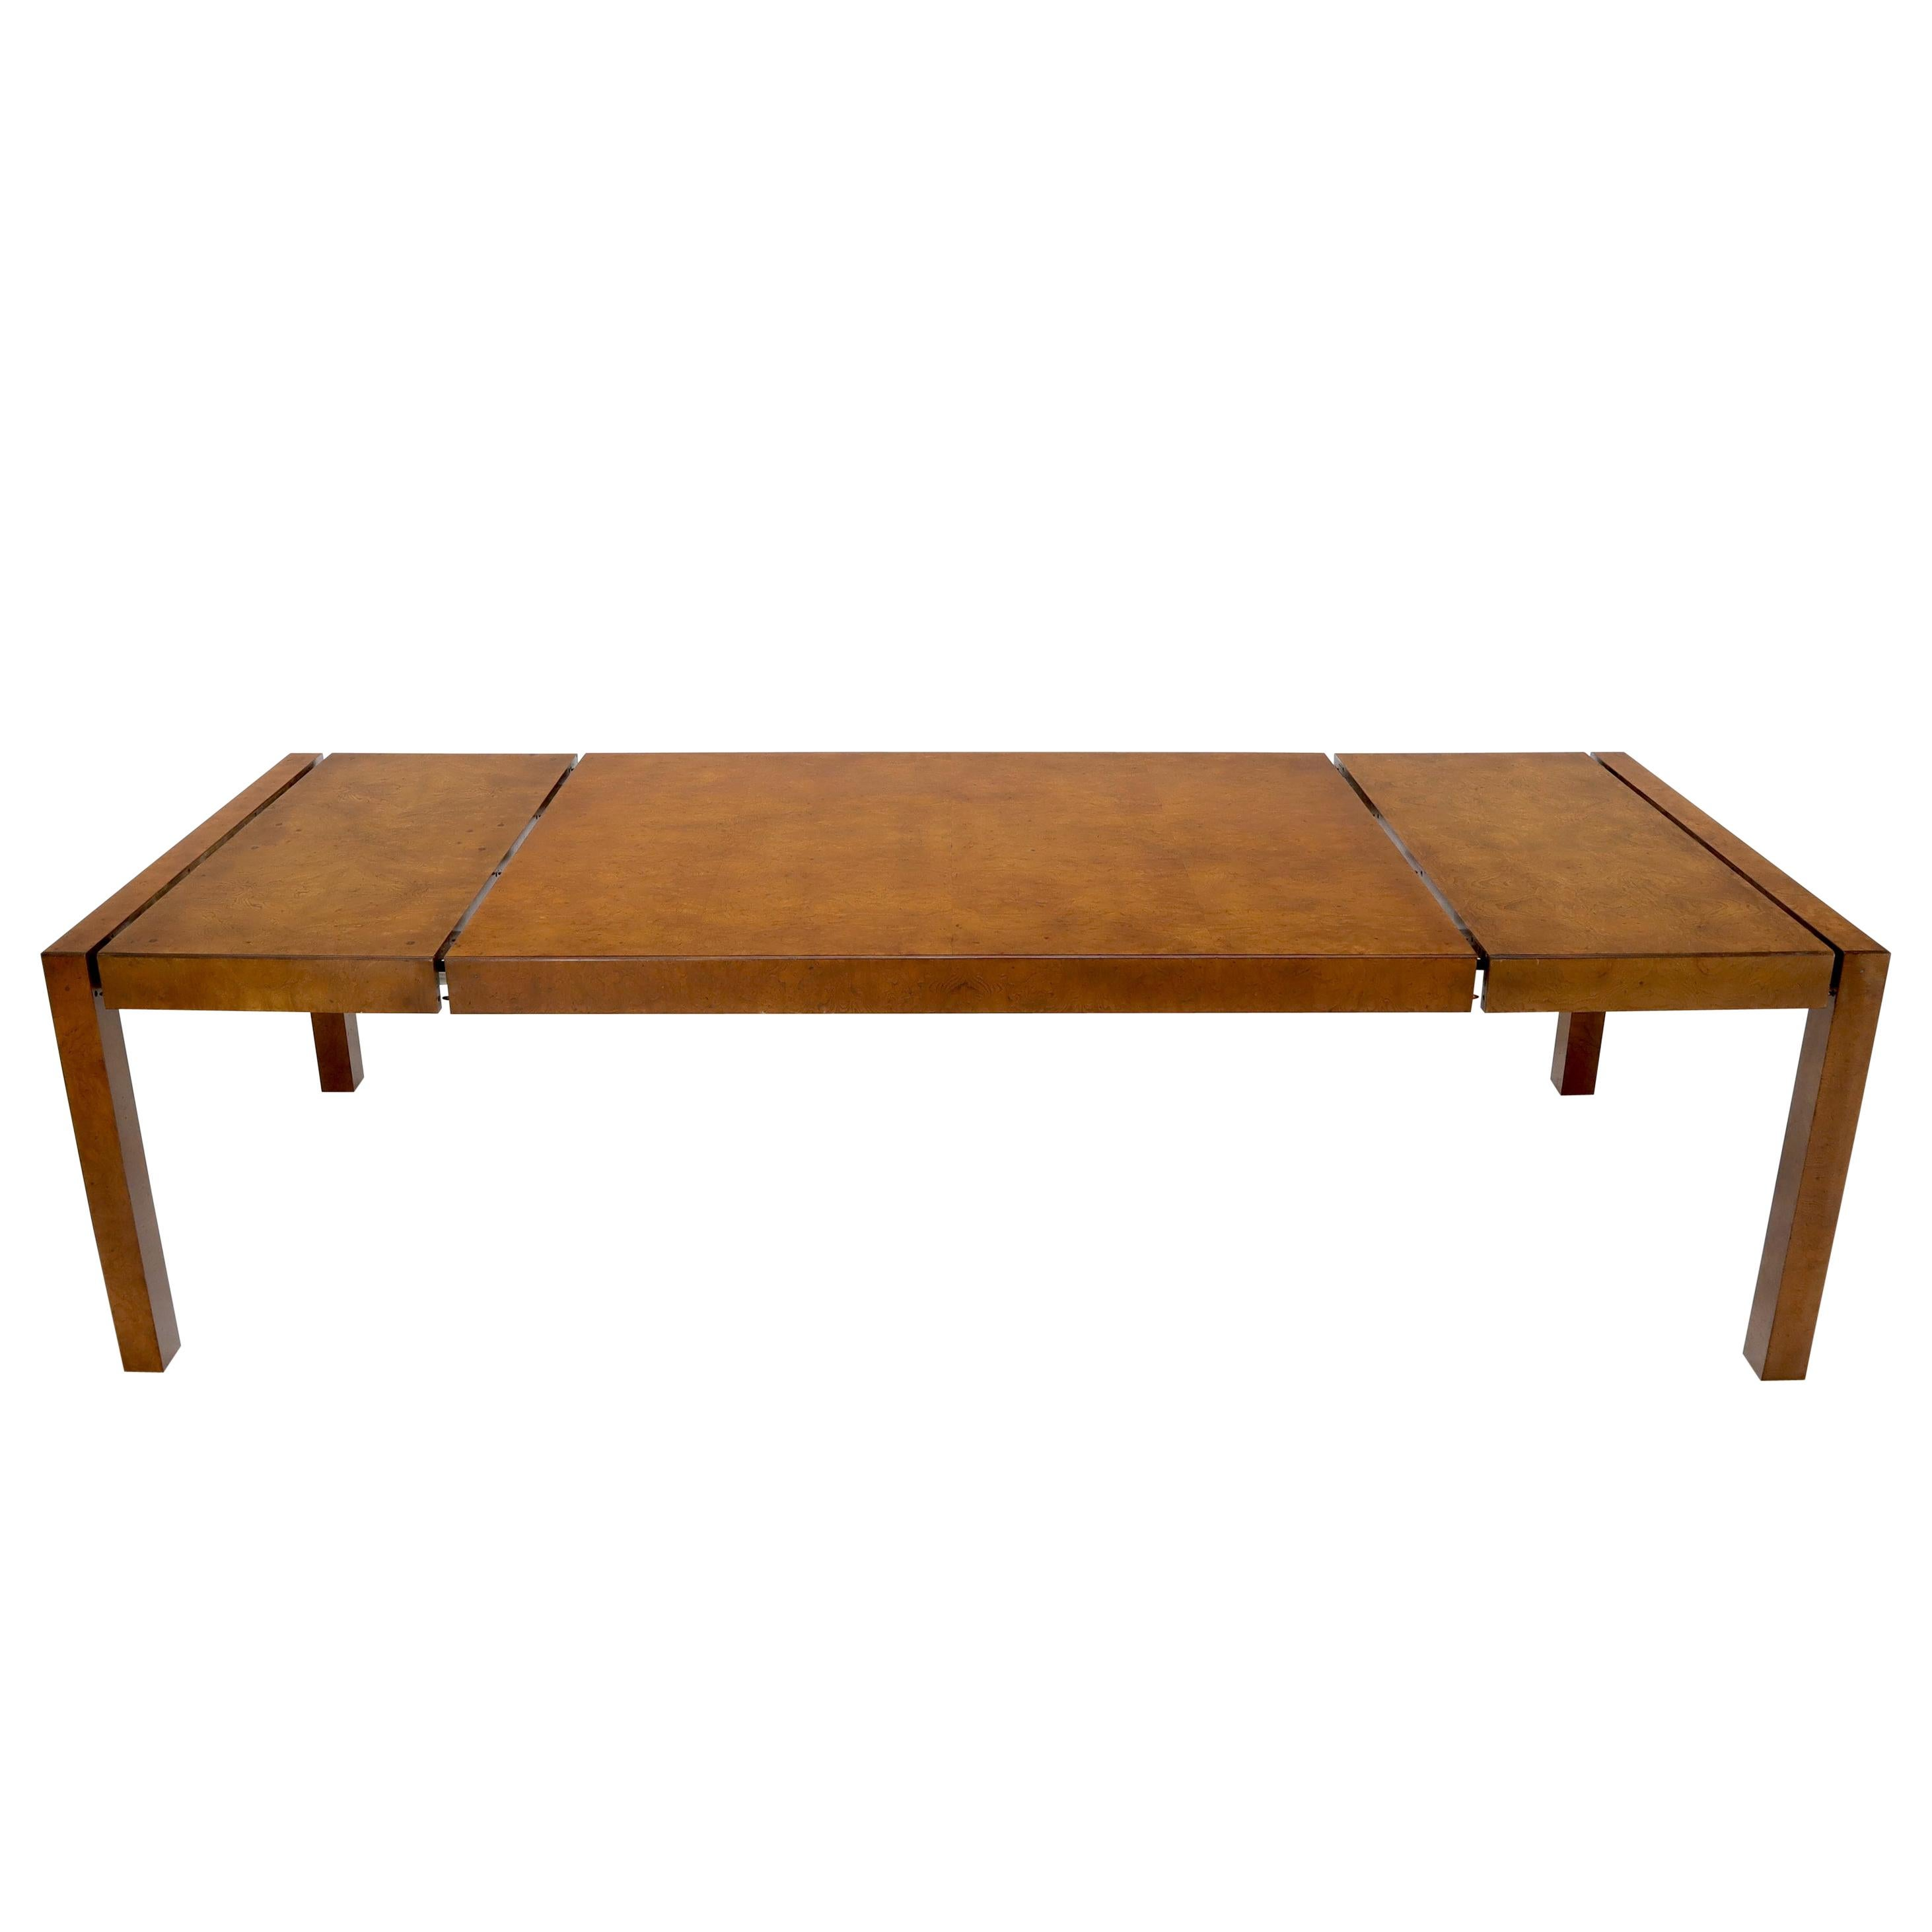 Large John Widdicomb Burl Wood Rectangle Dining Table with Two Leaves